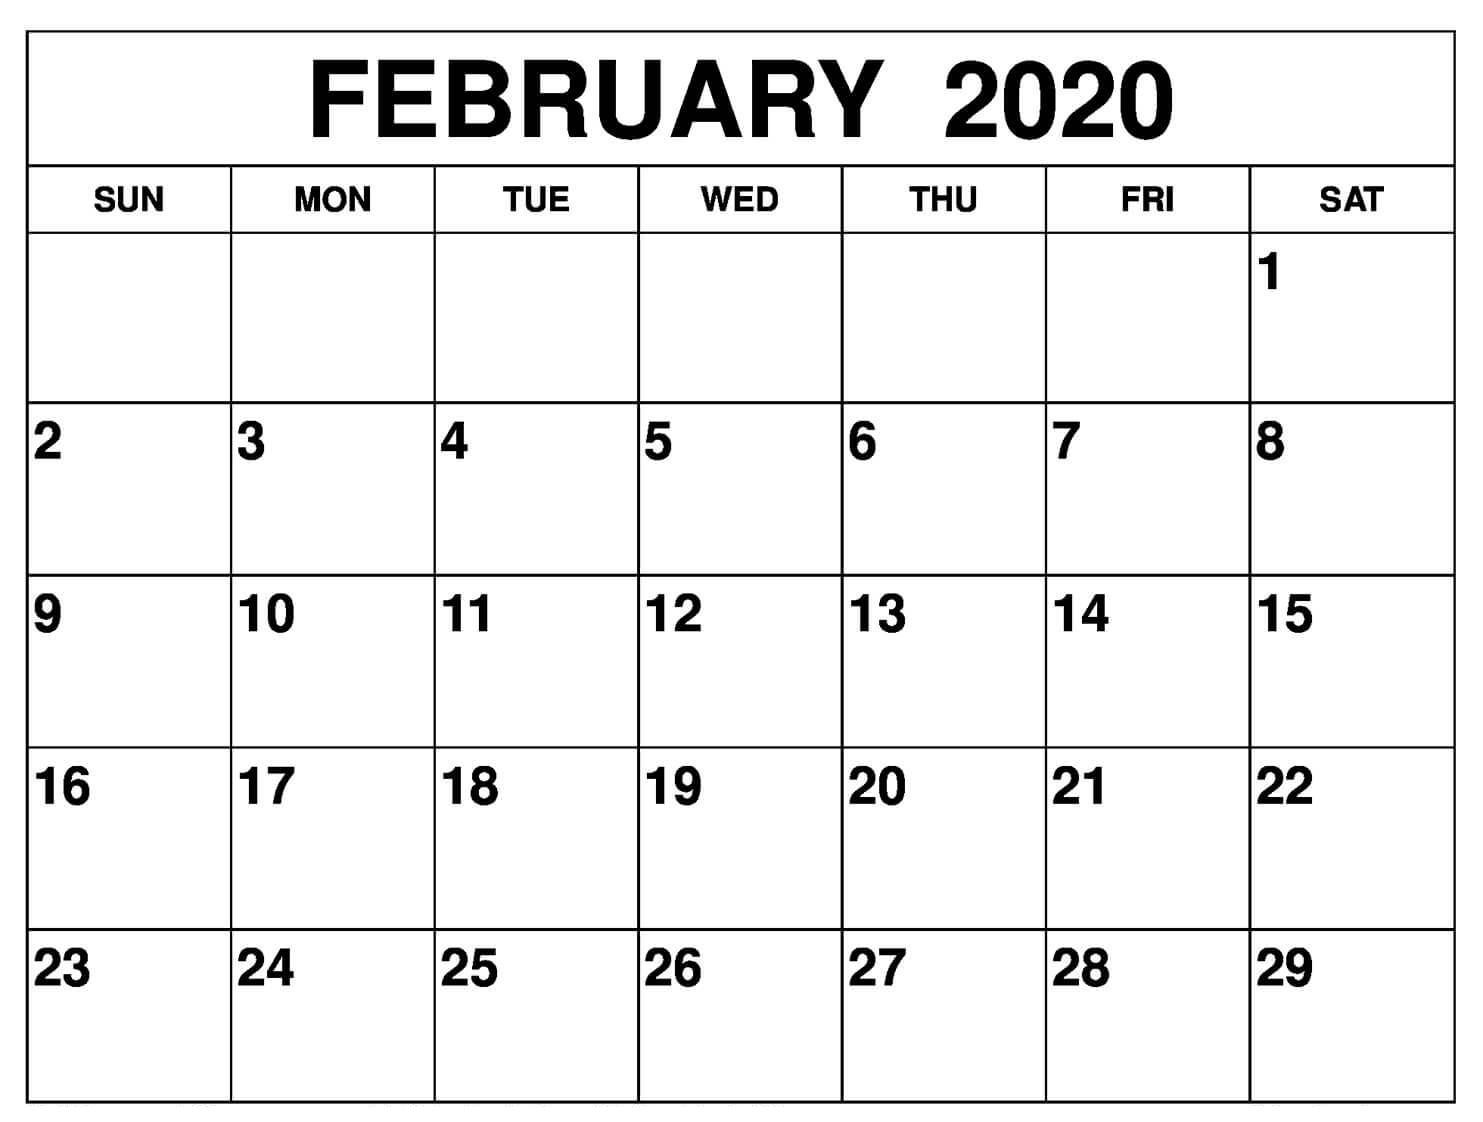 February 2020 Calendar Nz With Public Holidays | Free